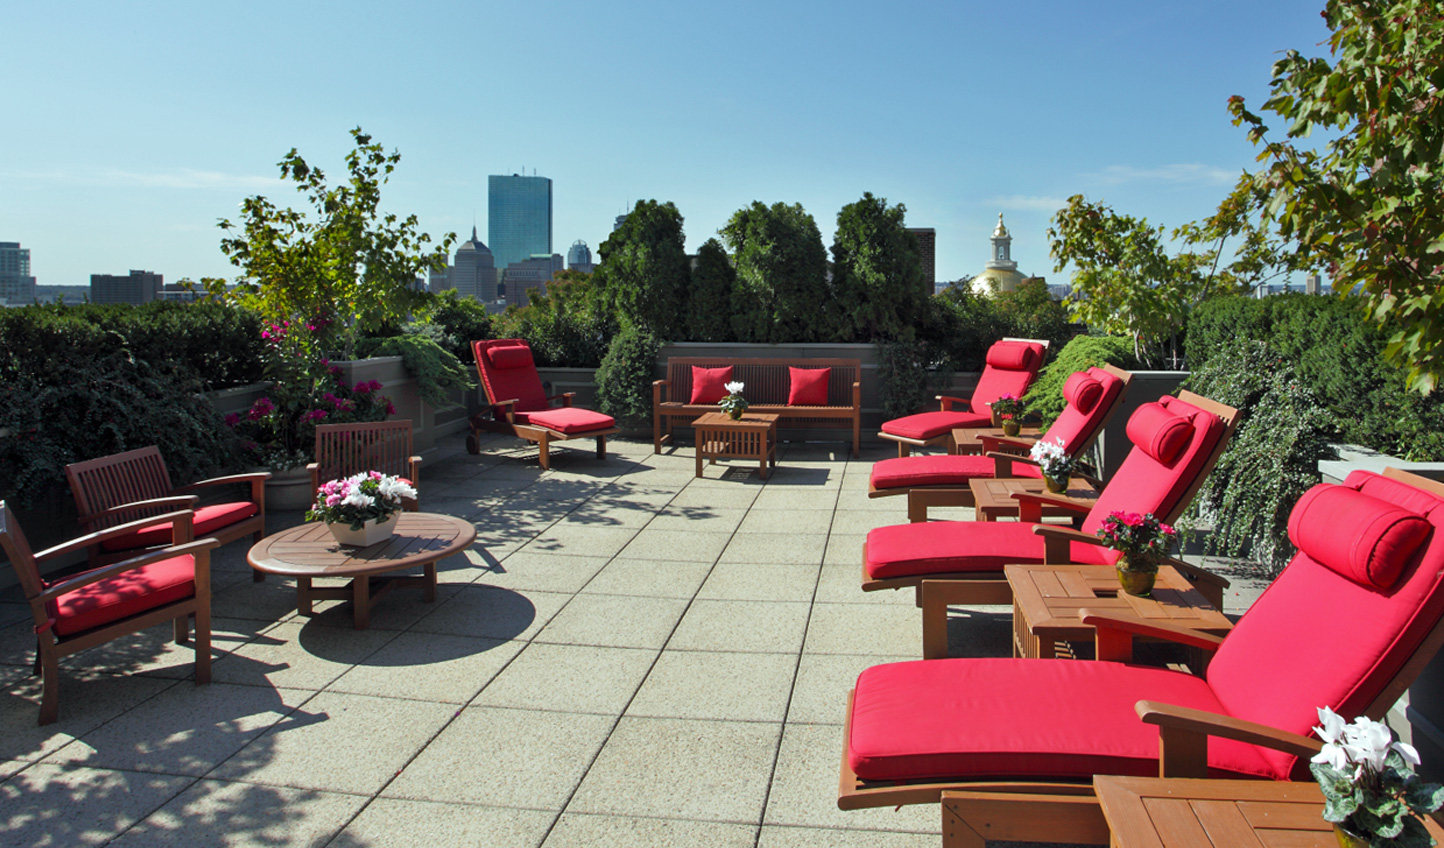 Feel the sun on your skin as you kick back and relax on the hotel's rooftop